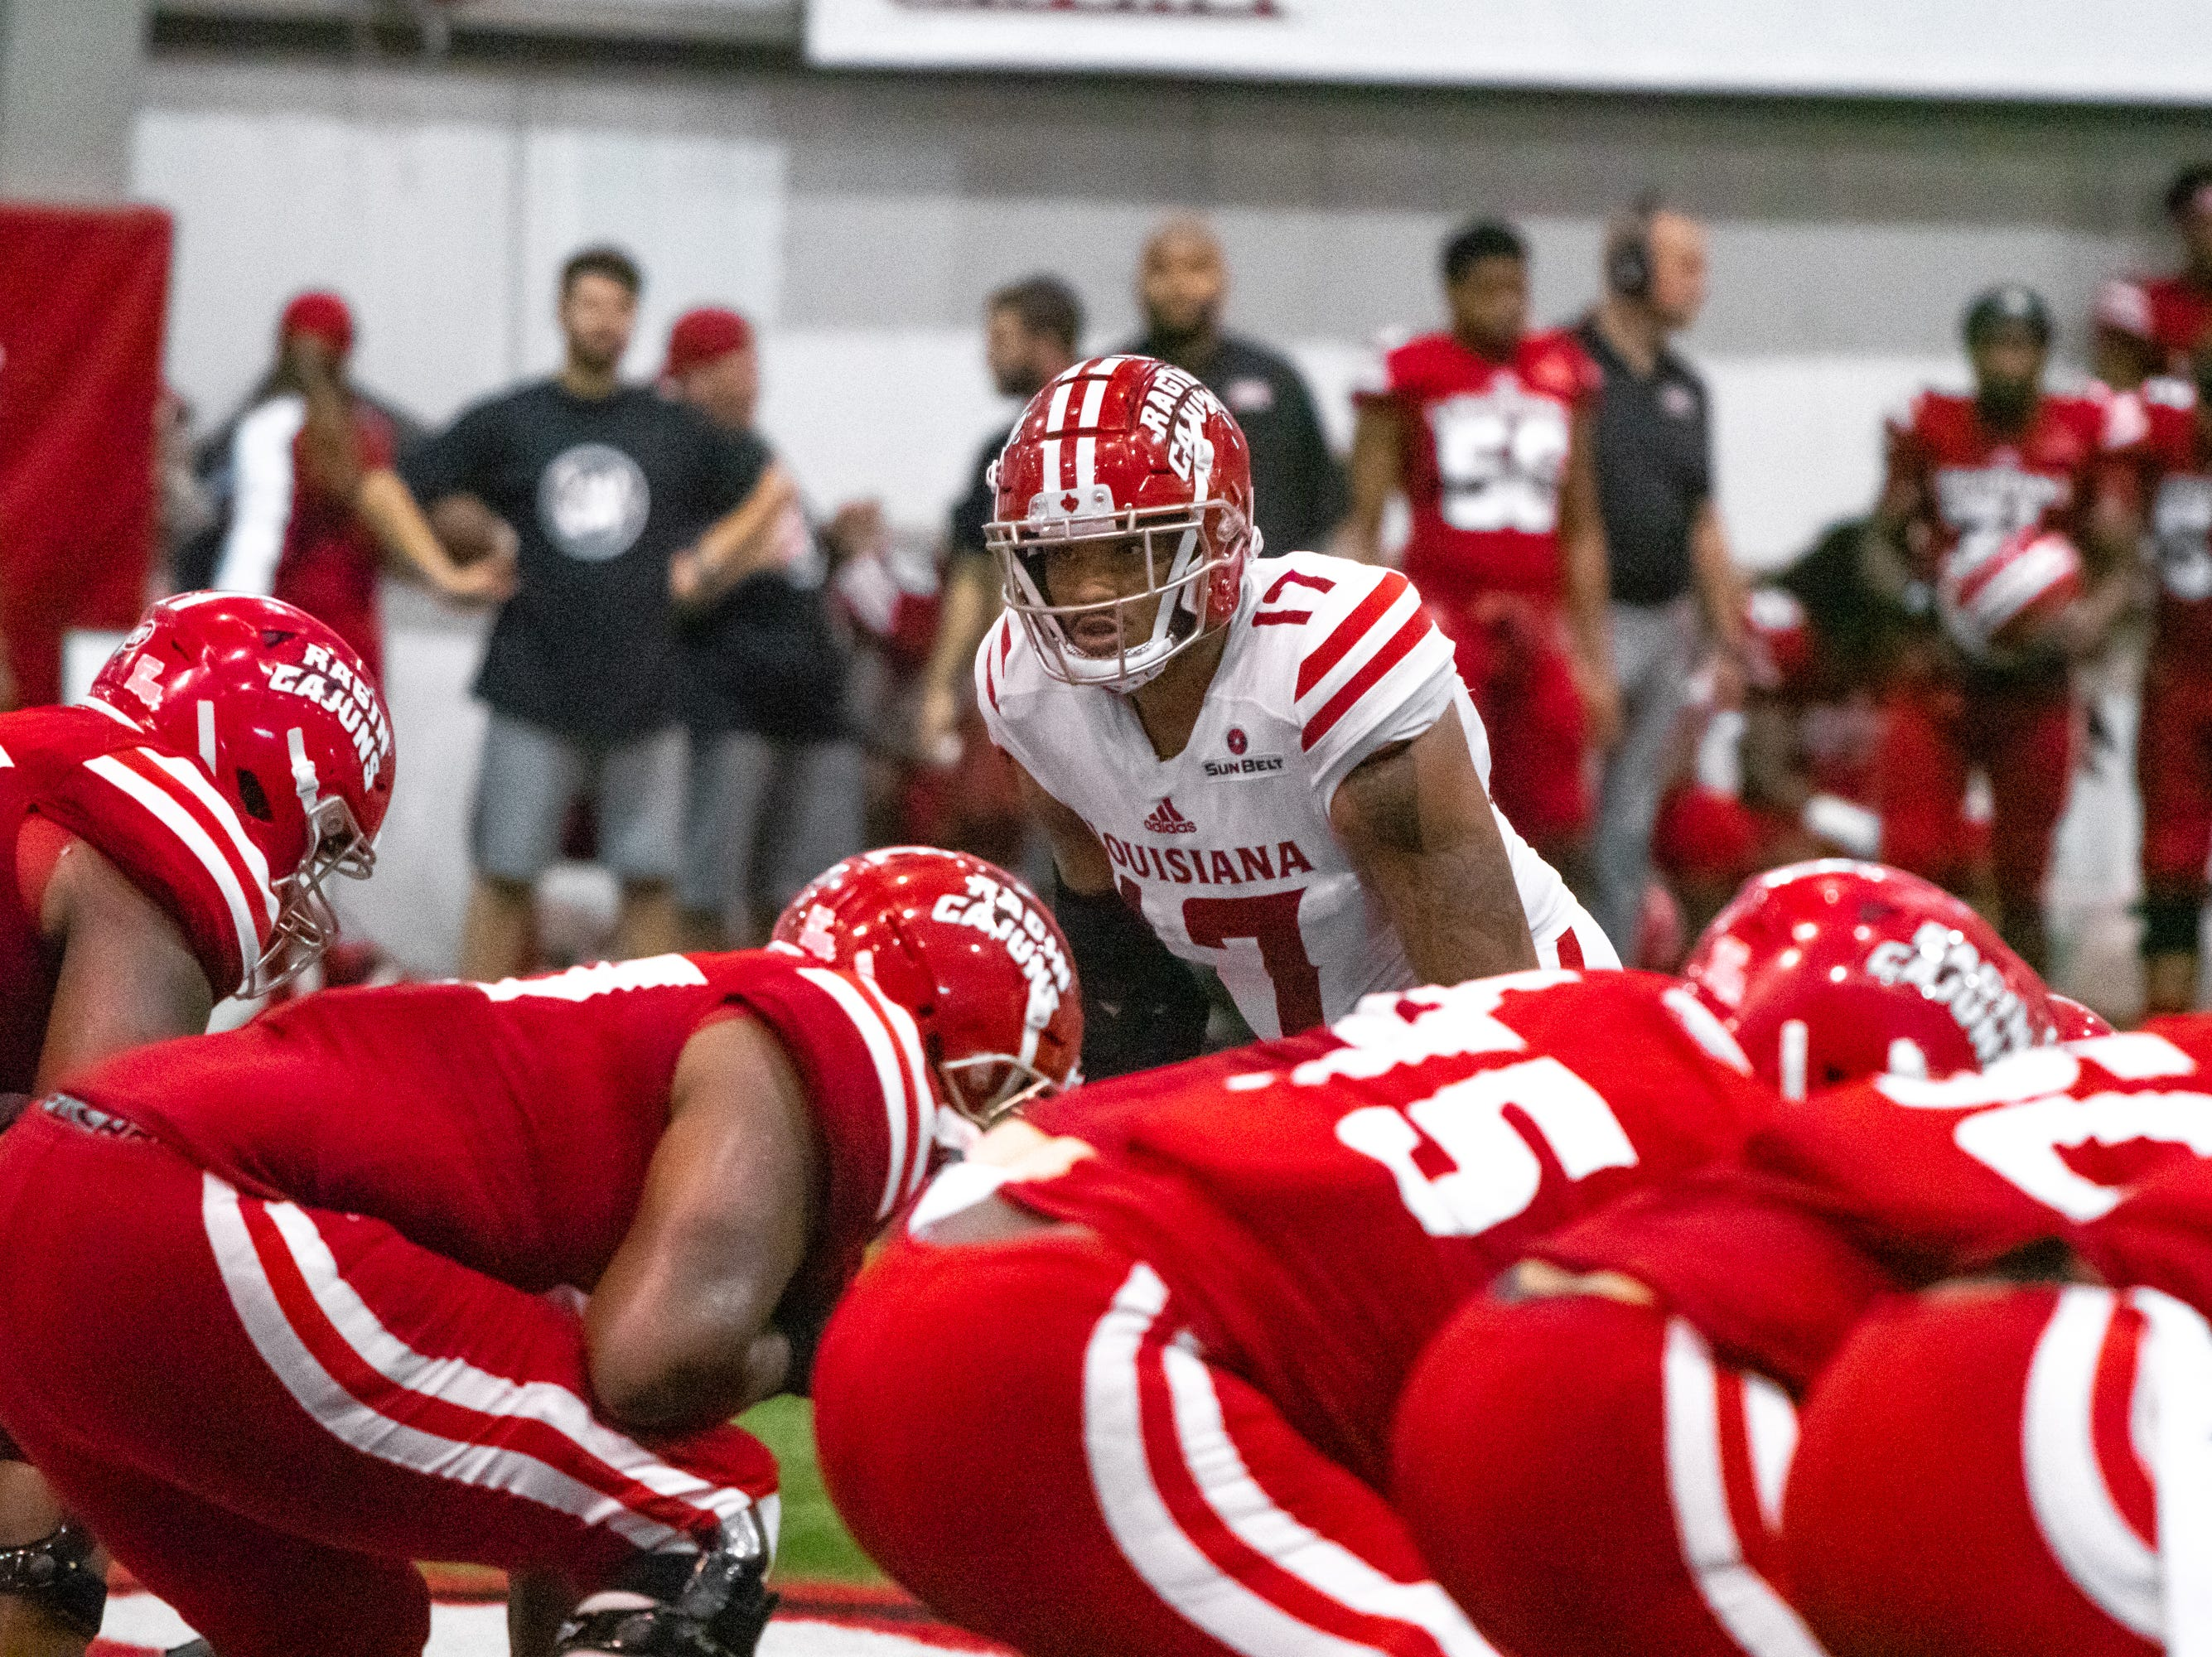 UL's Chauncey Manac looks over the offensive line as the Ragin' Cajuns football team plays their annual Spring football game against one another in the Leon Moncla trainig facility on April 13, 2019.